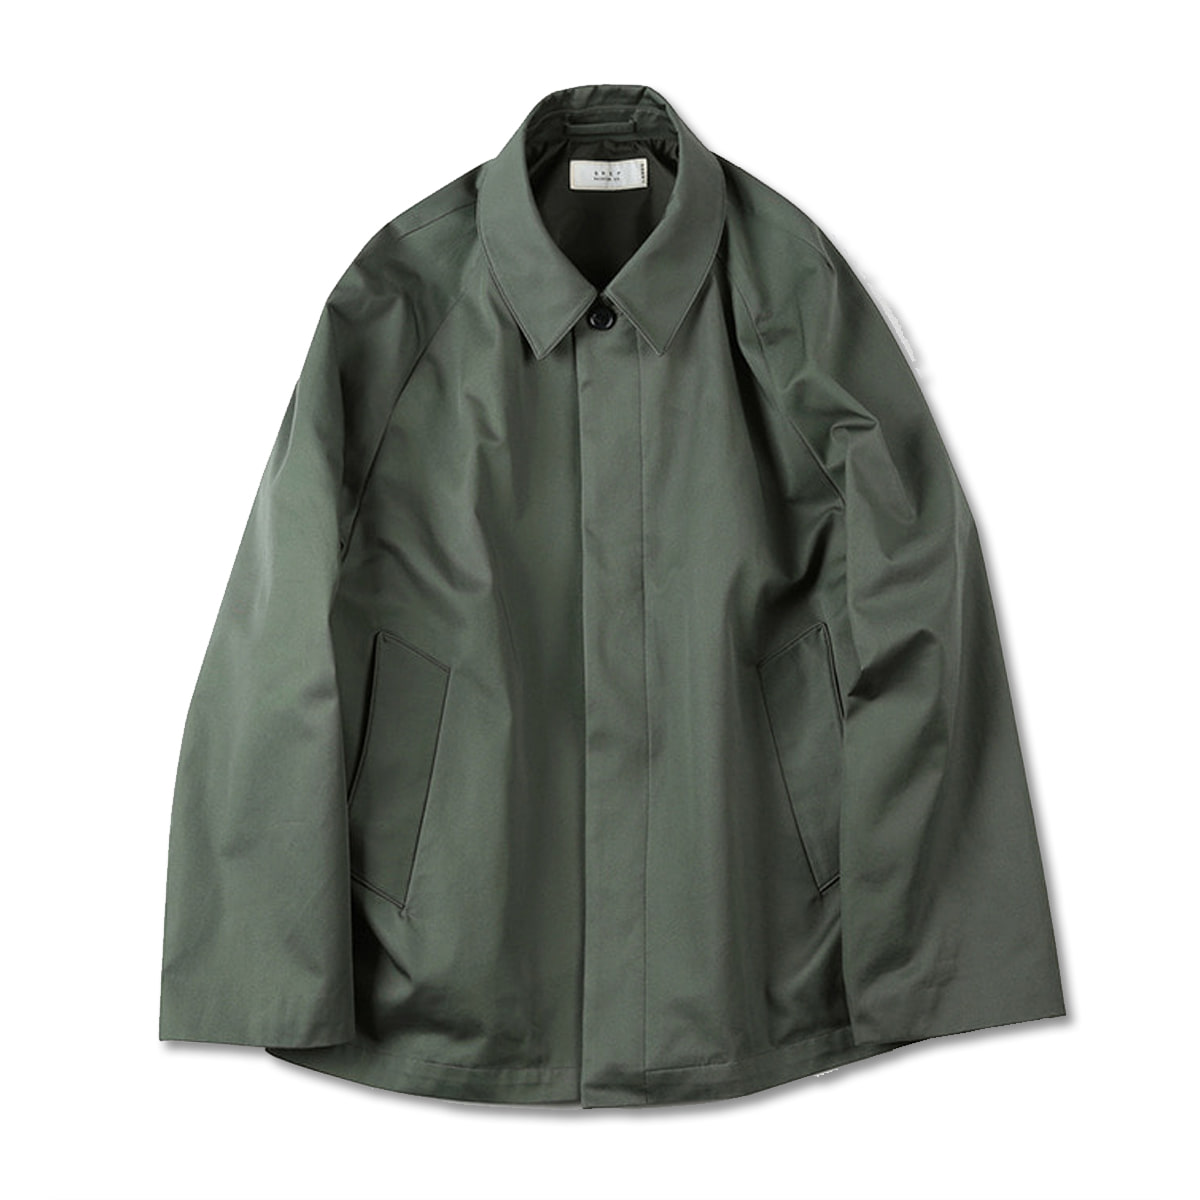 [SHIRTER] SUPIMA COTTON JACKET 'OLIVE'